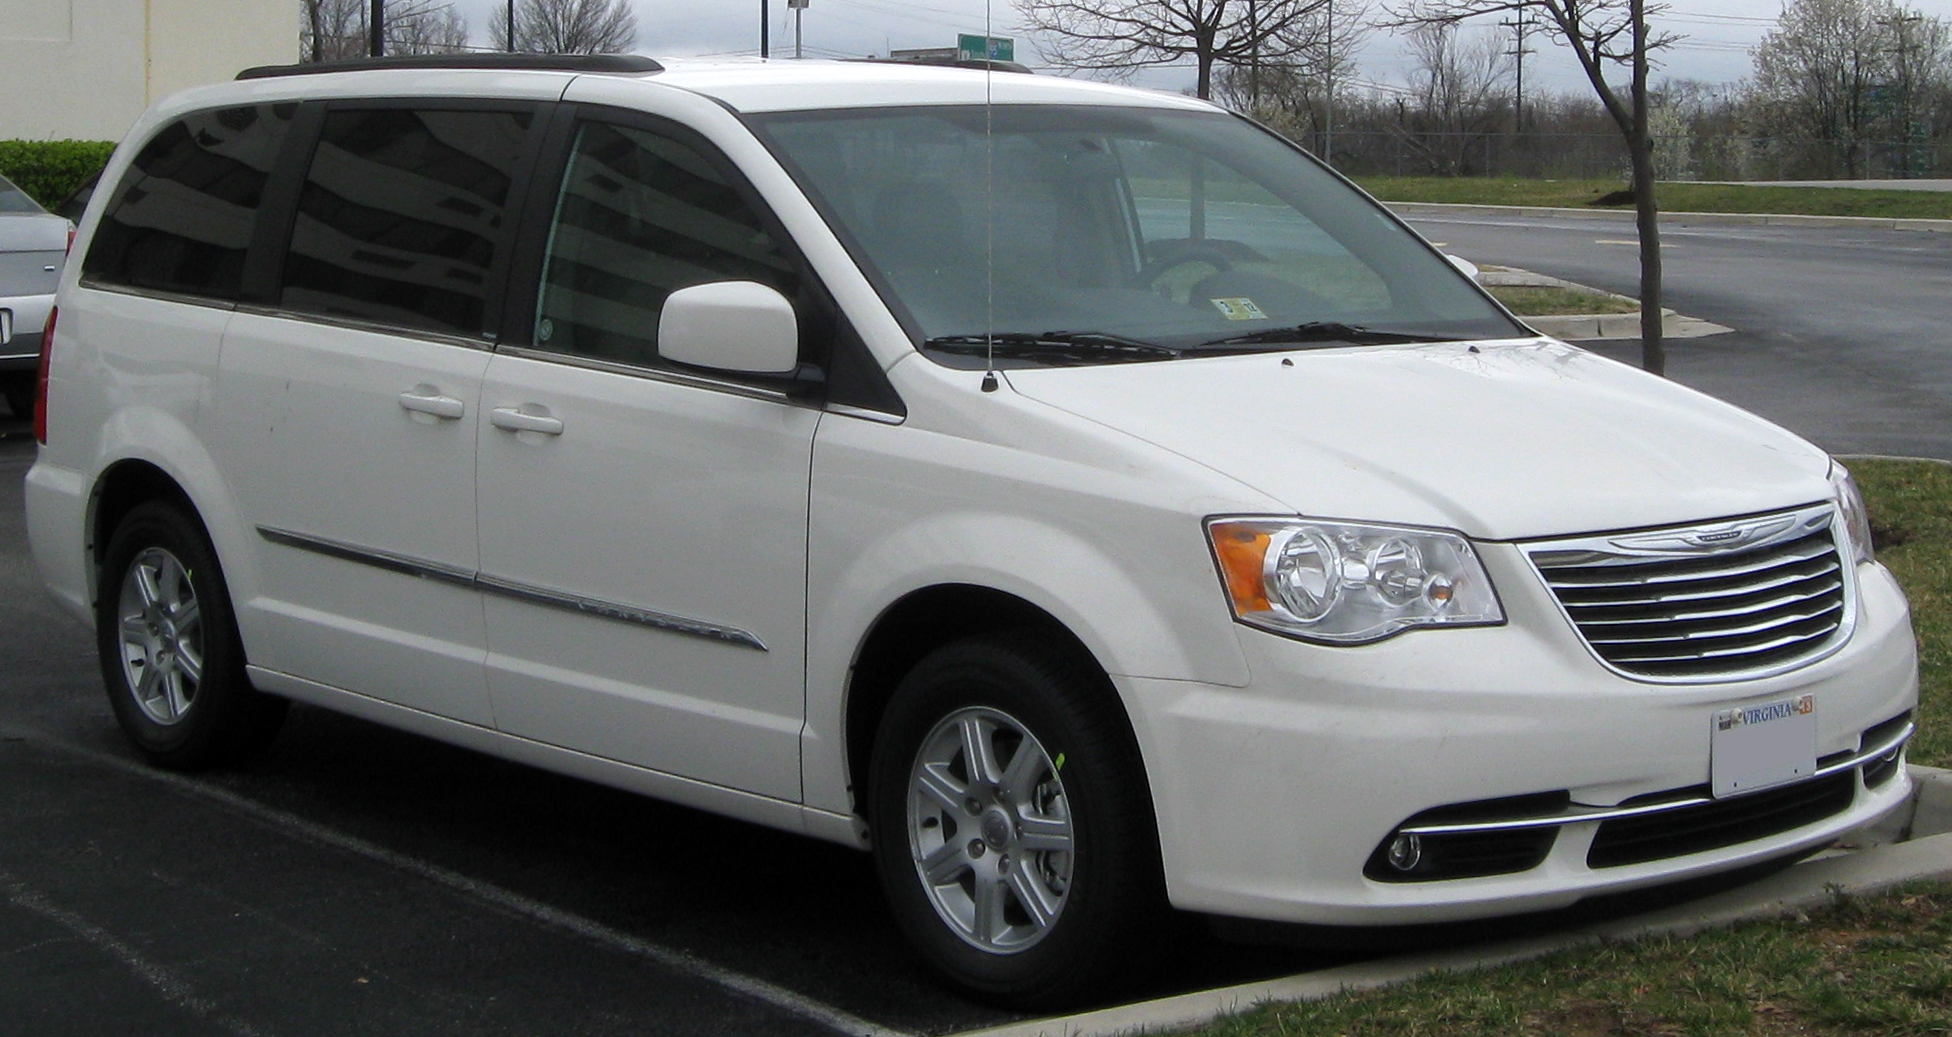 latest rumors out of windsor point to dodge grand caravan 39 s demise the truth about cars. Black Bedroom Furniture Sets. Home Design Ideas